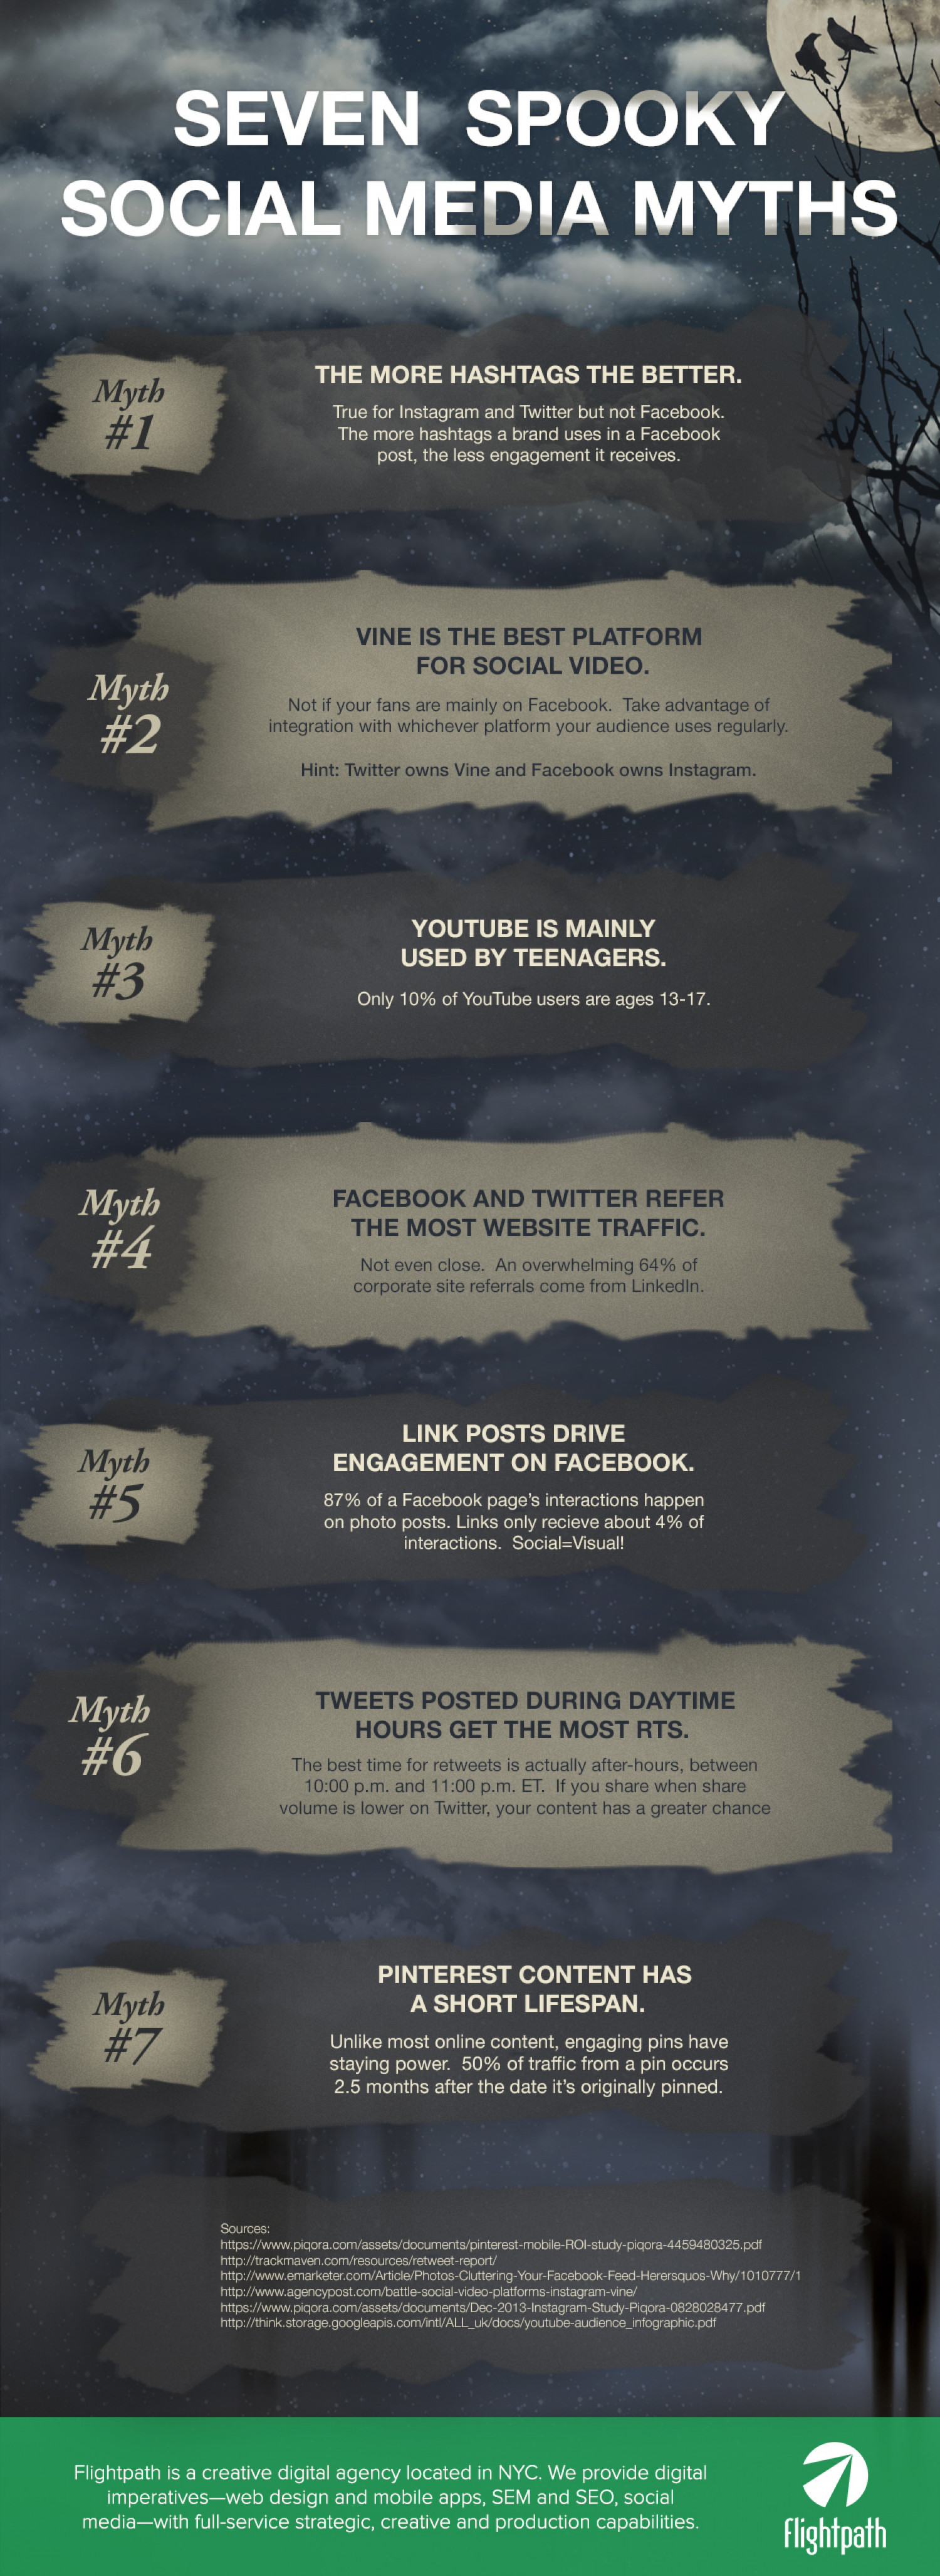 Spooky Social Media Myths Infographic